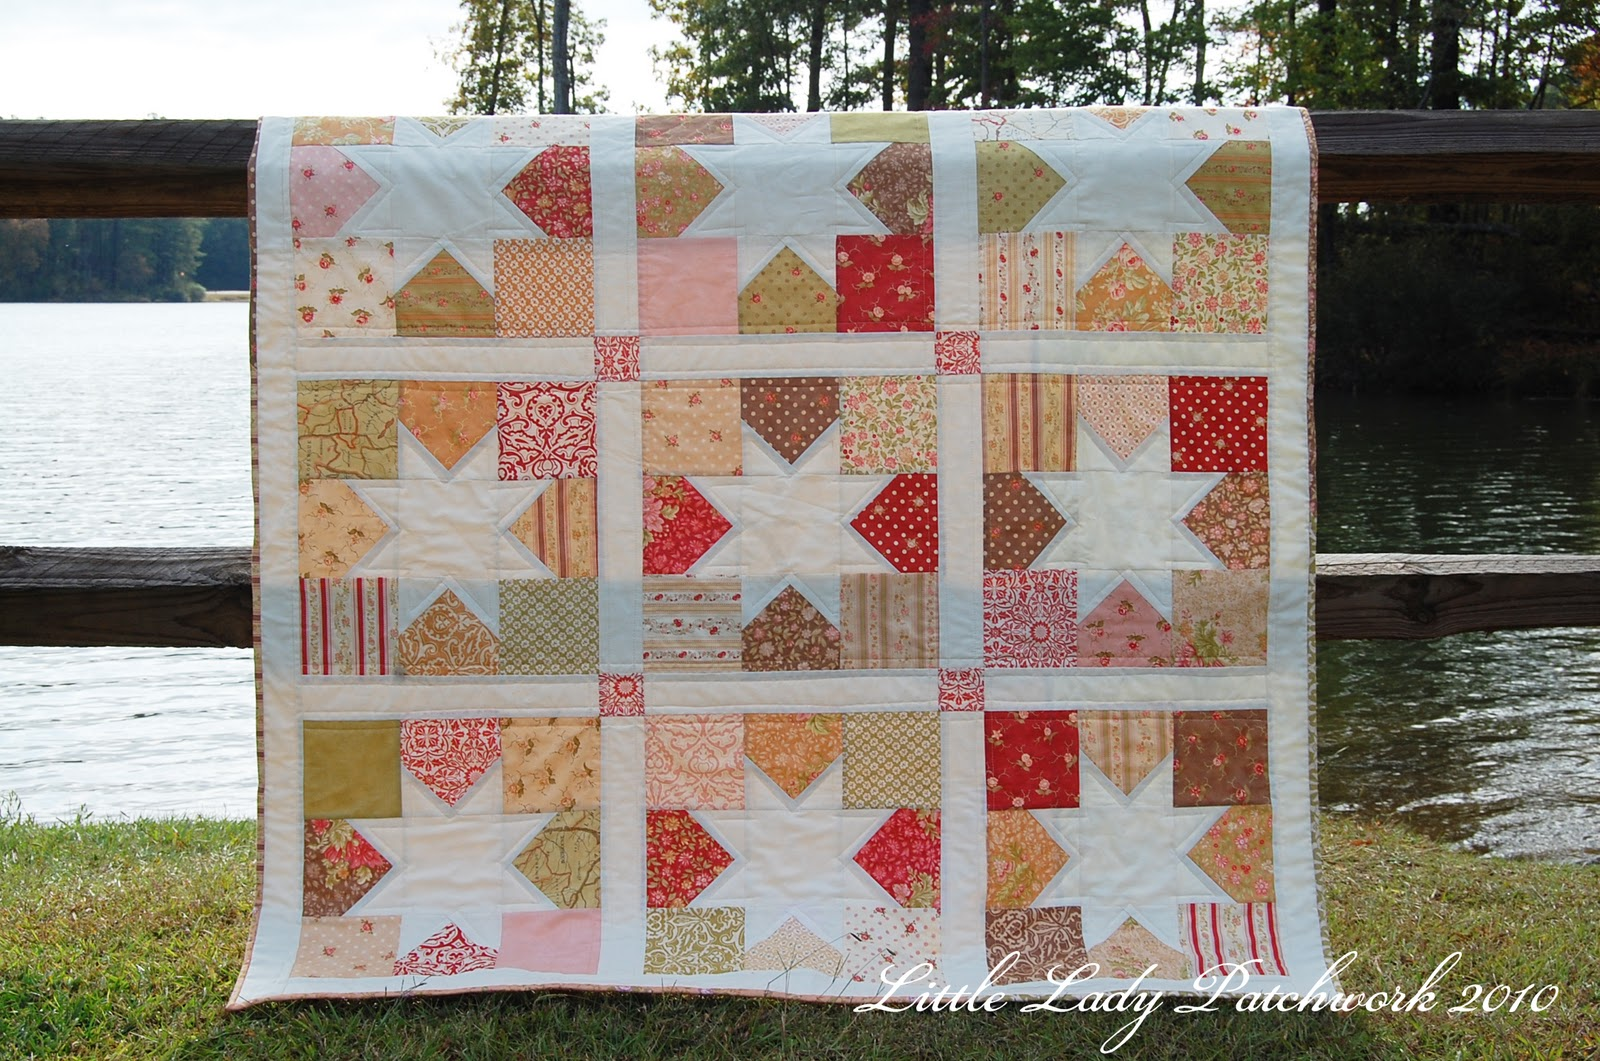 Little Lady Patchwork Charming Stars The Fig Tree Version